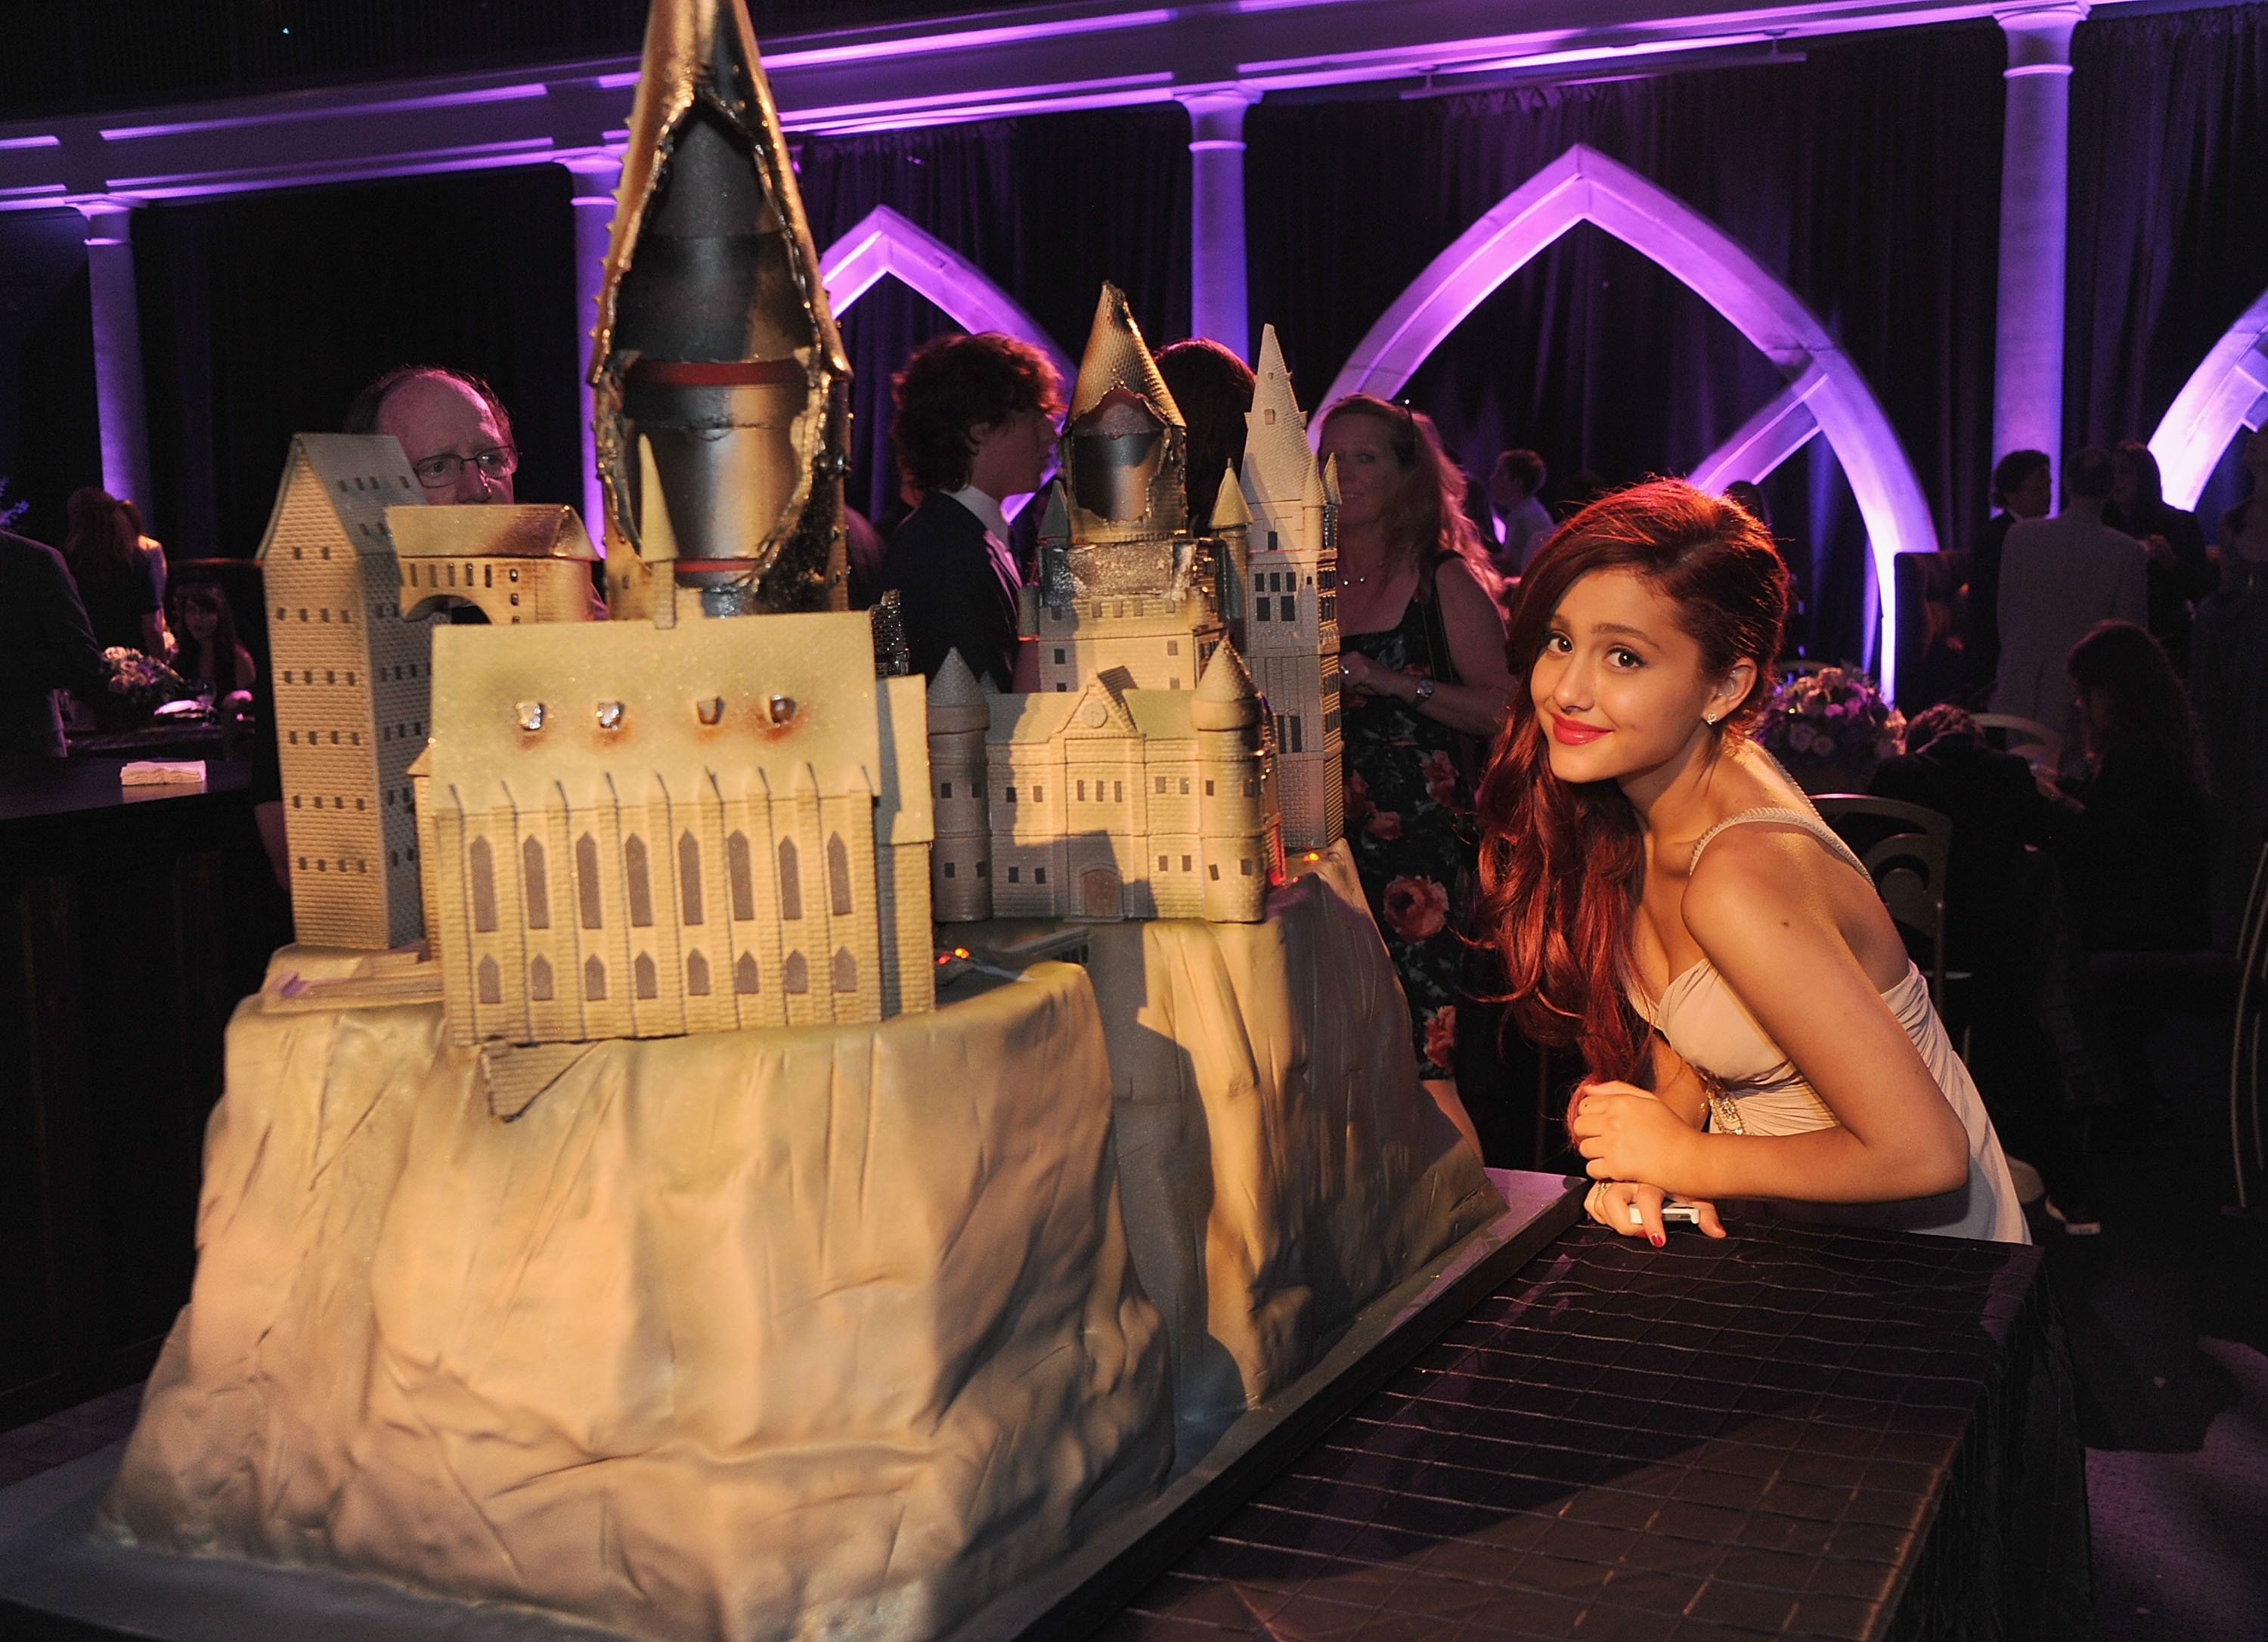 """Ariana Grande attended the premiere of """"Harry Potter and the Deathly Hallows: Part 2"""" in New York in July 2011."""